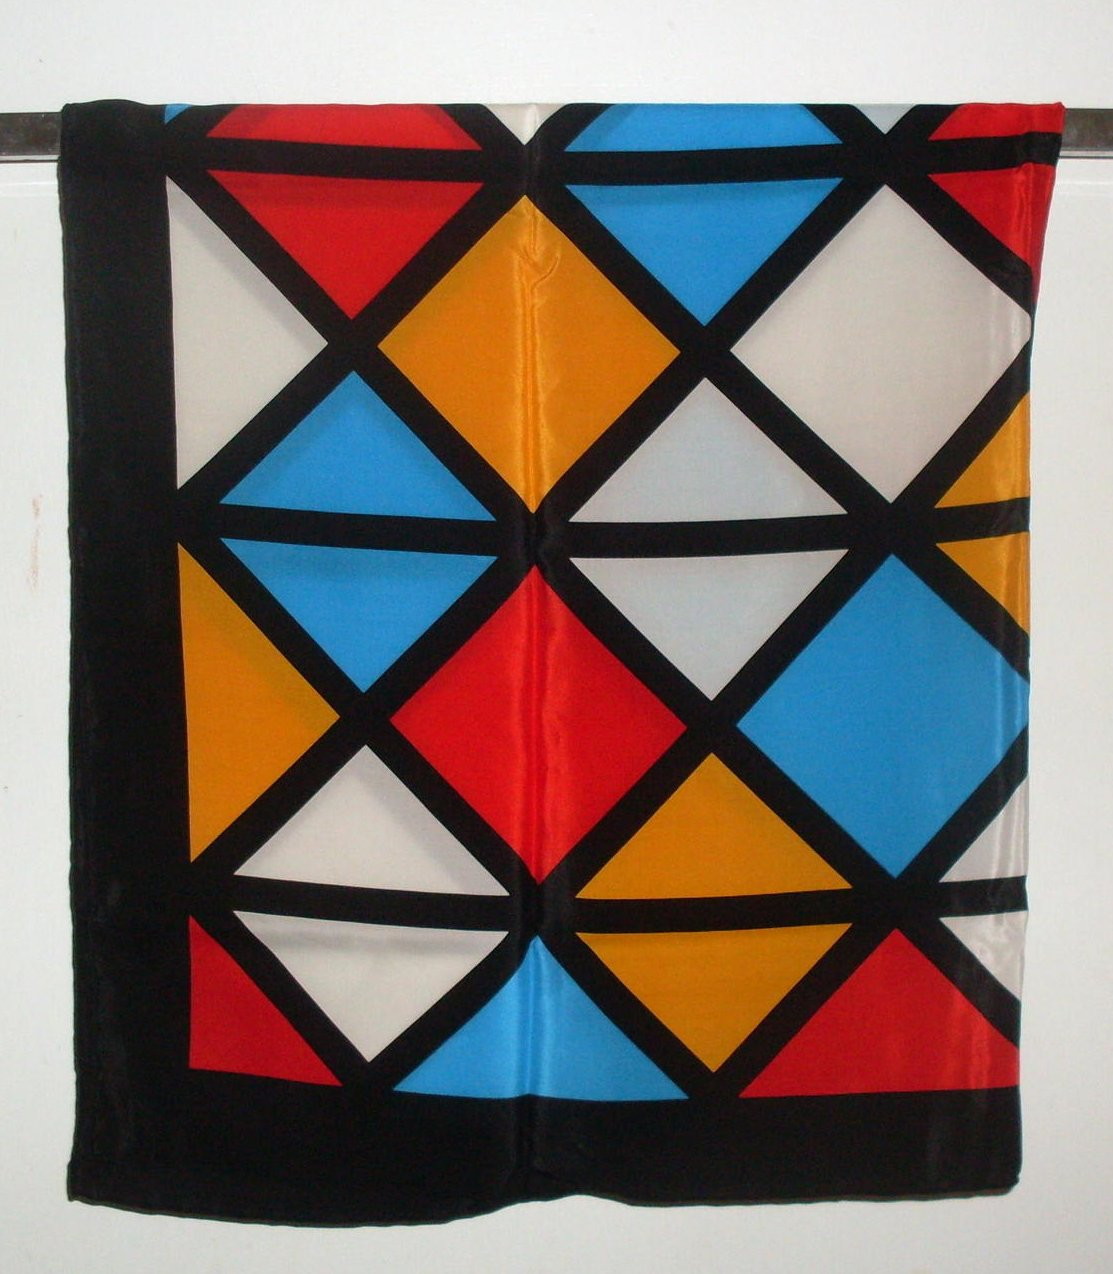 Image 1 of Echo Geometric Print Silk Scarf Black White Blue 35 Inch